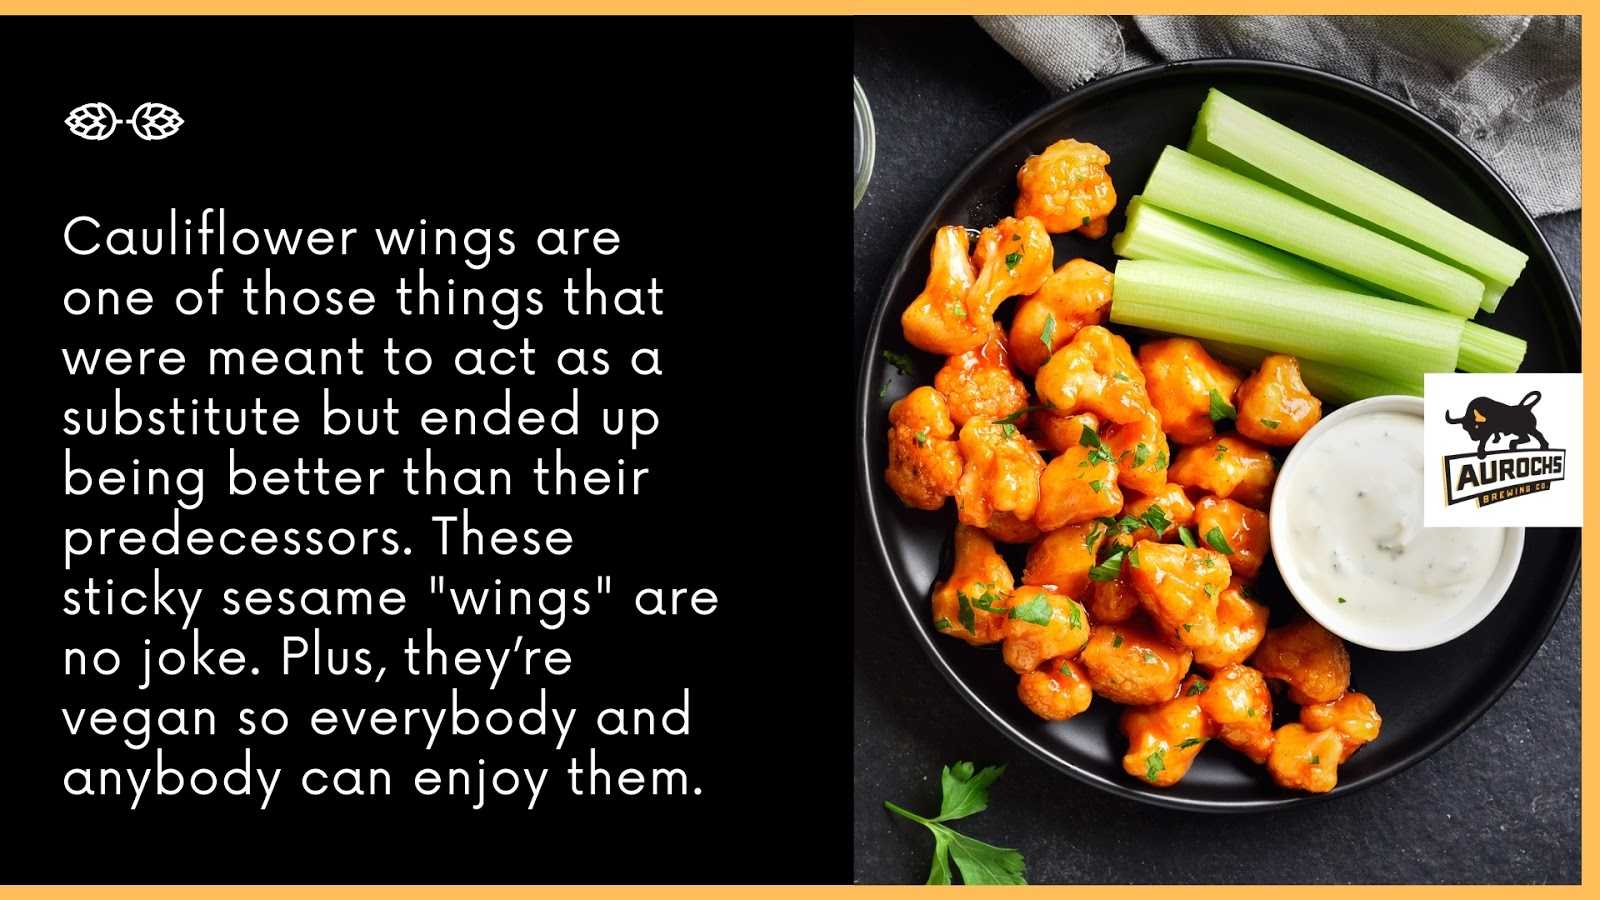 Cauliflower wings are one of those things that ended up better than their predecessors